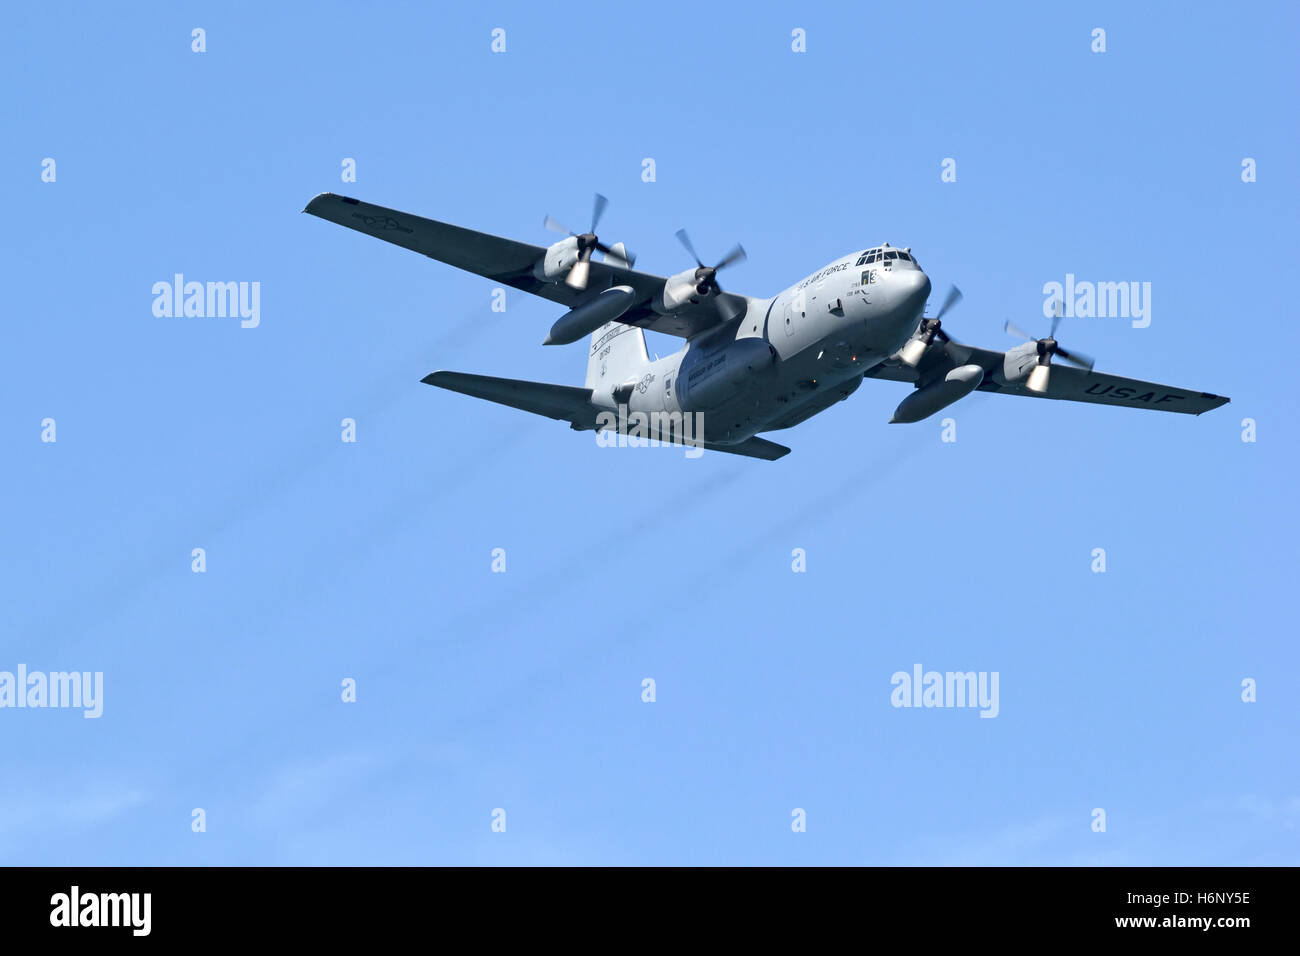 Missouri Air National Guard C-130H Hercules assigned to the 139th Airlift Wing (AMC). - Stock Image